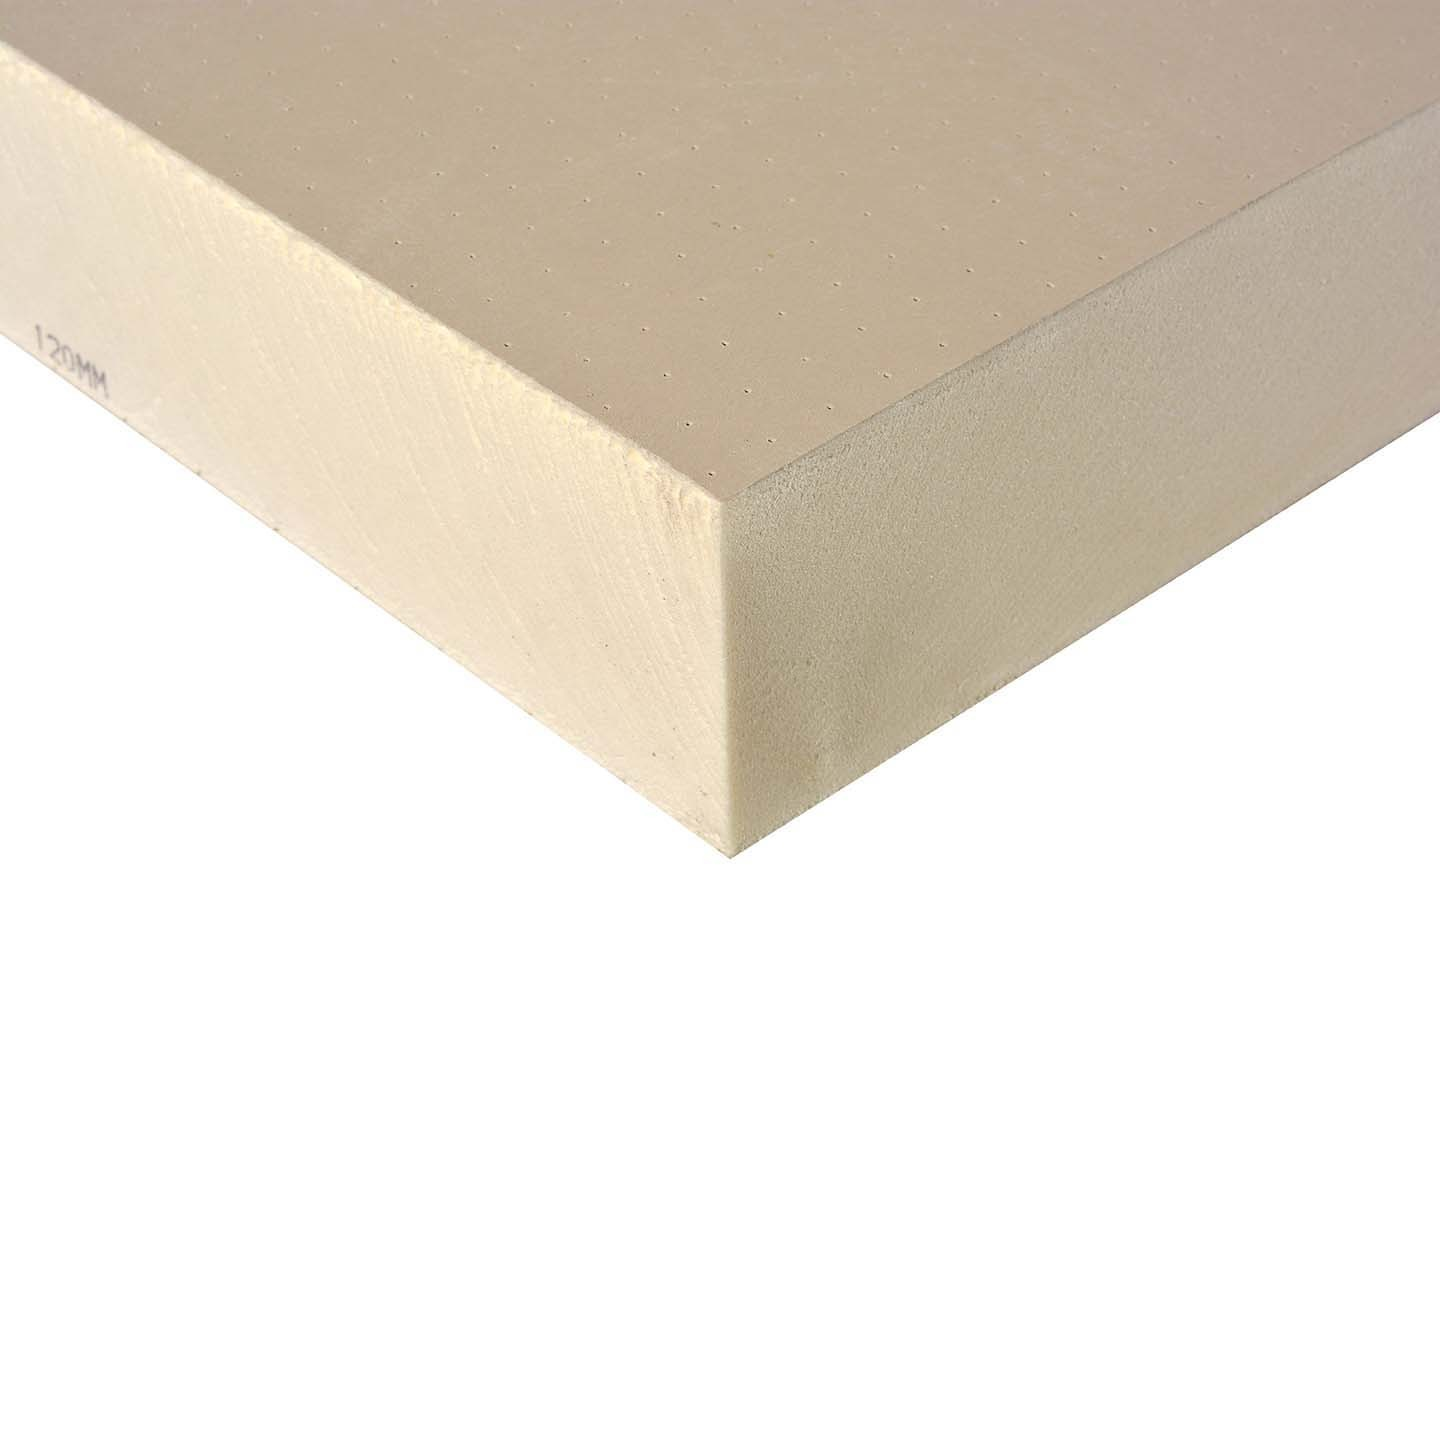 CCM THERMAL INSULATION-T